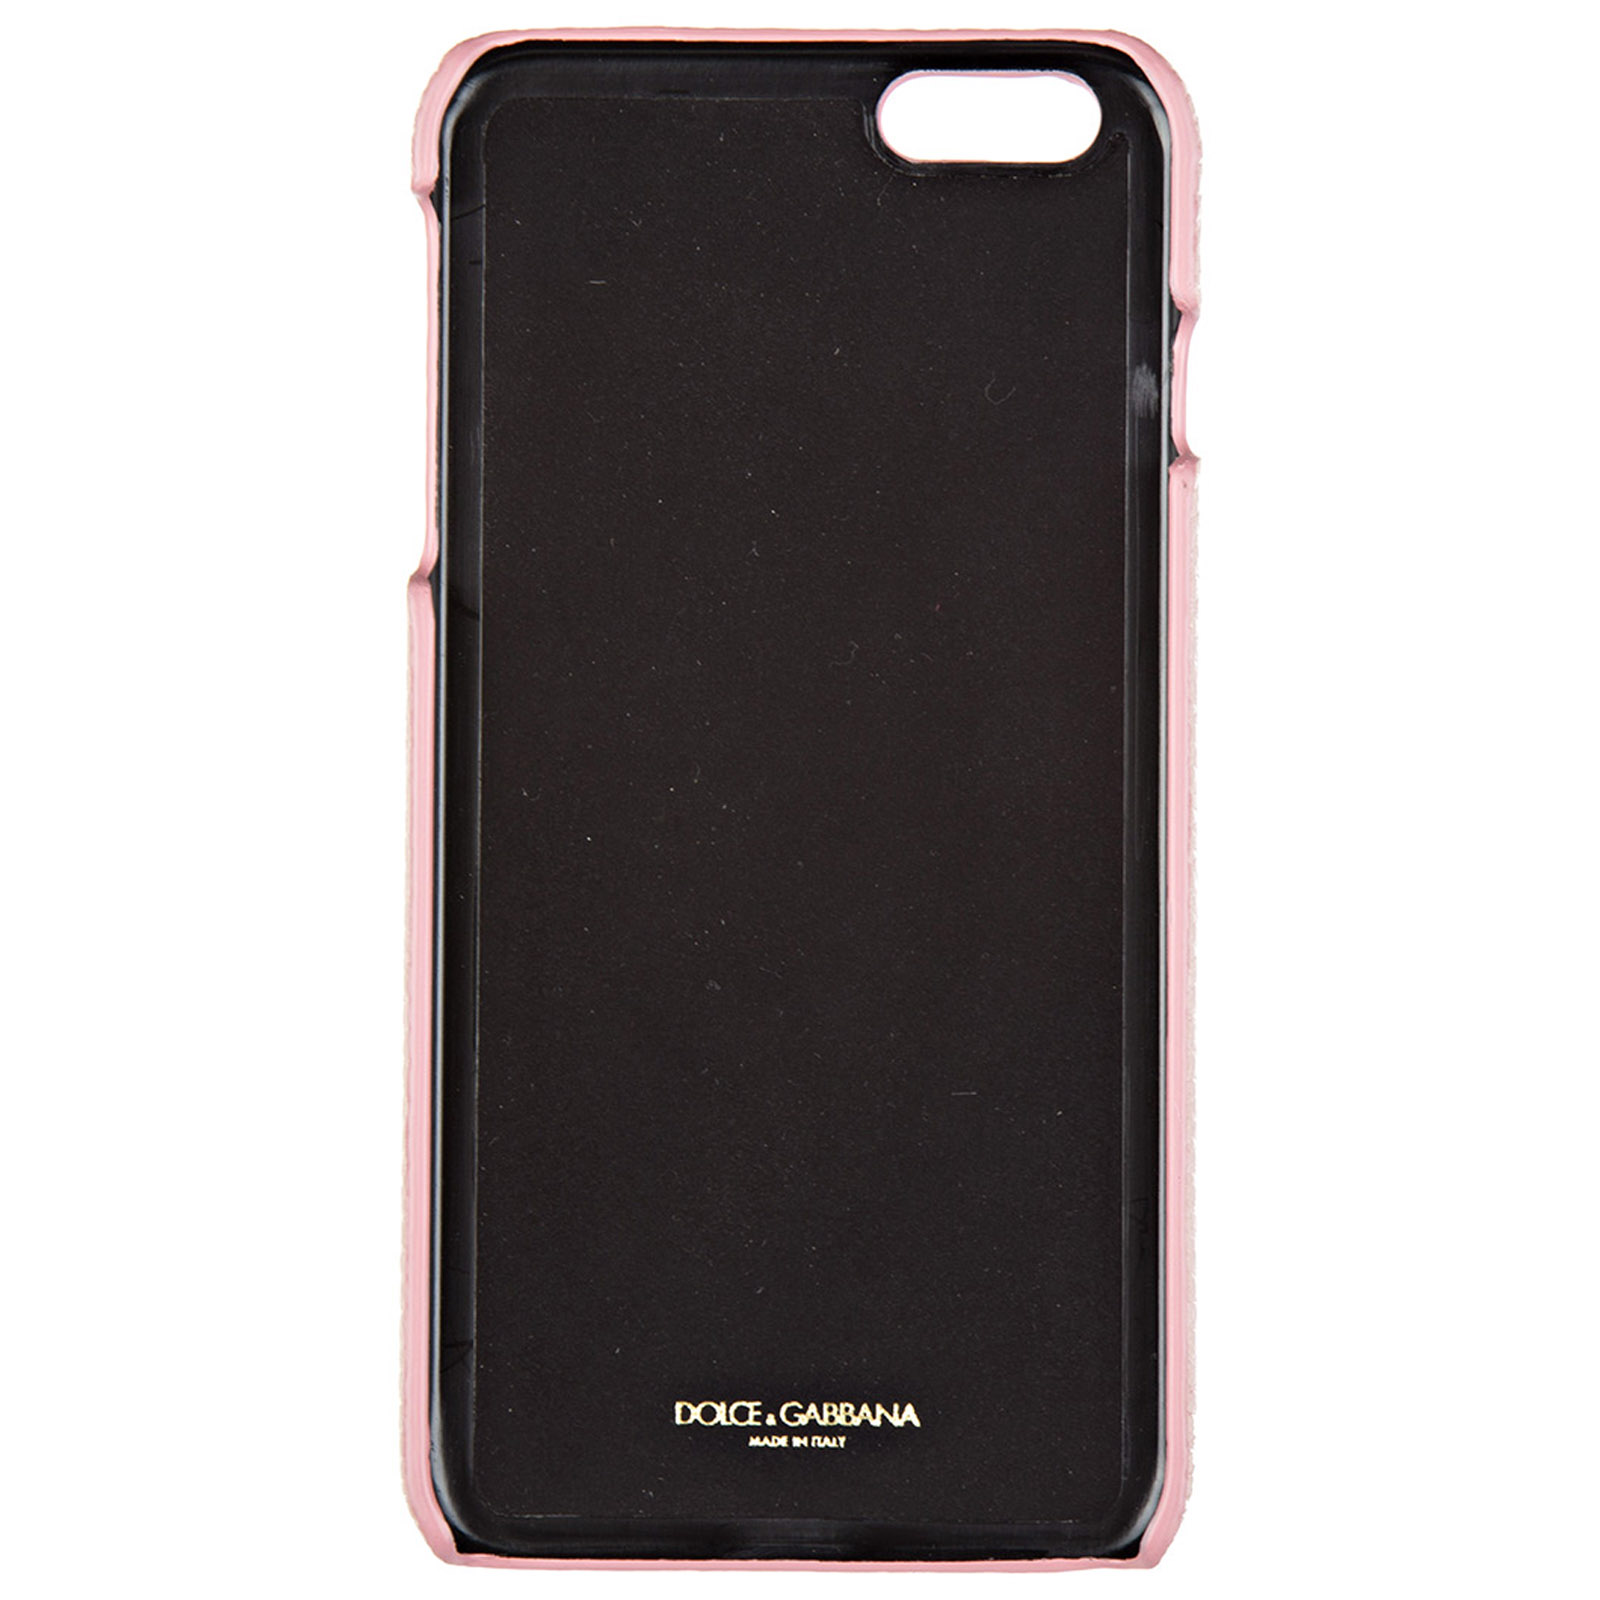 Cover case iphone 6 in genuine leather